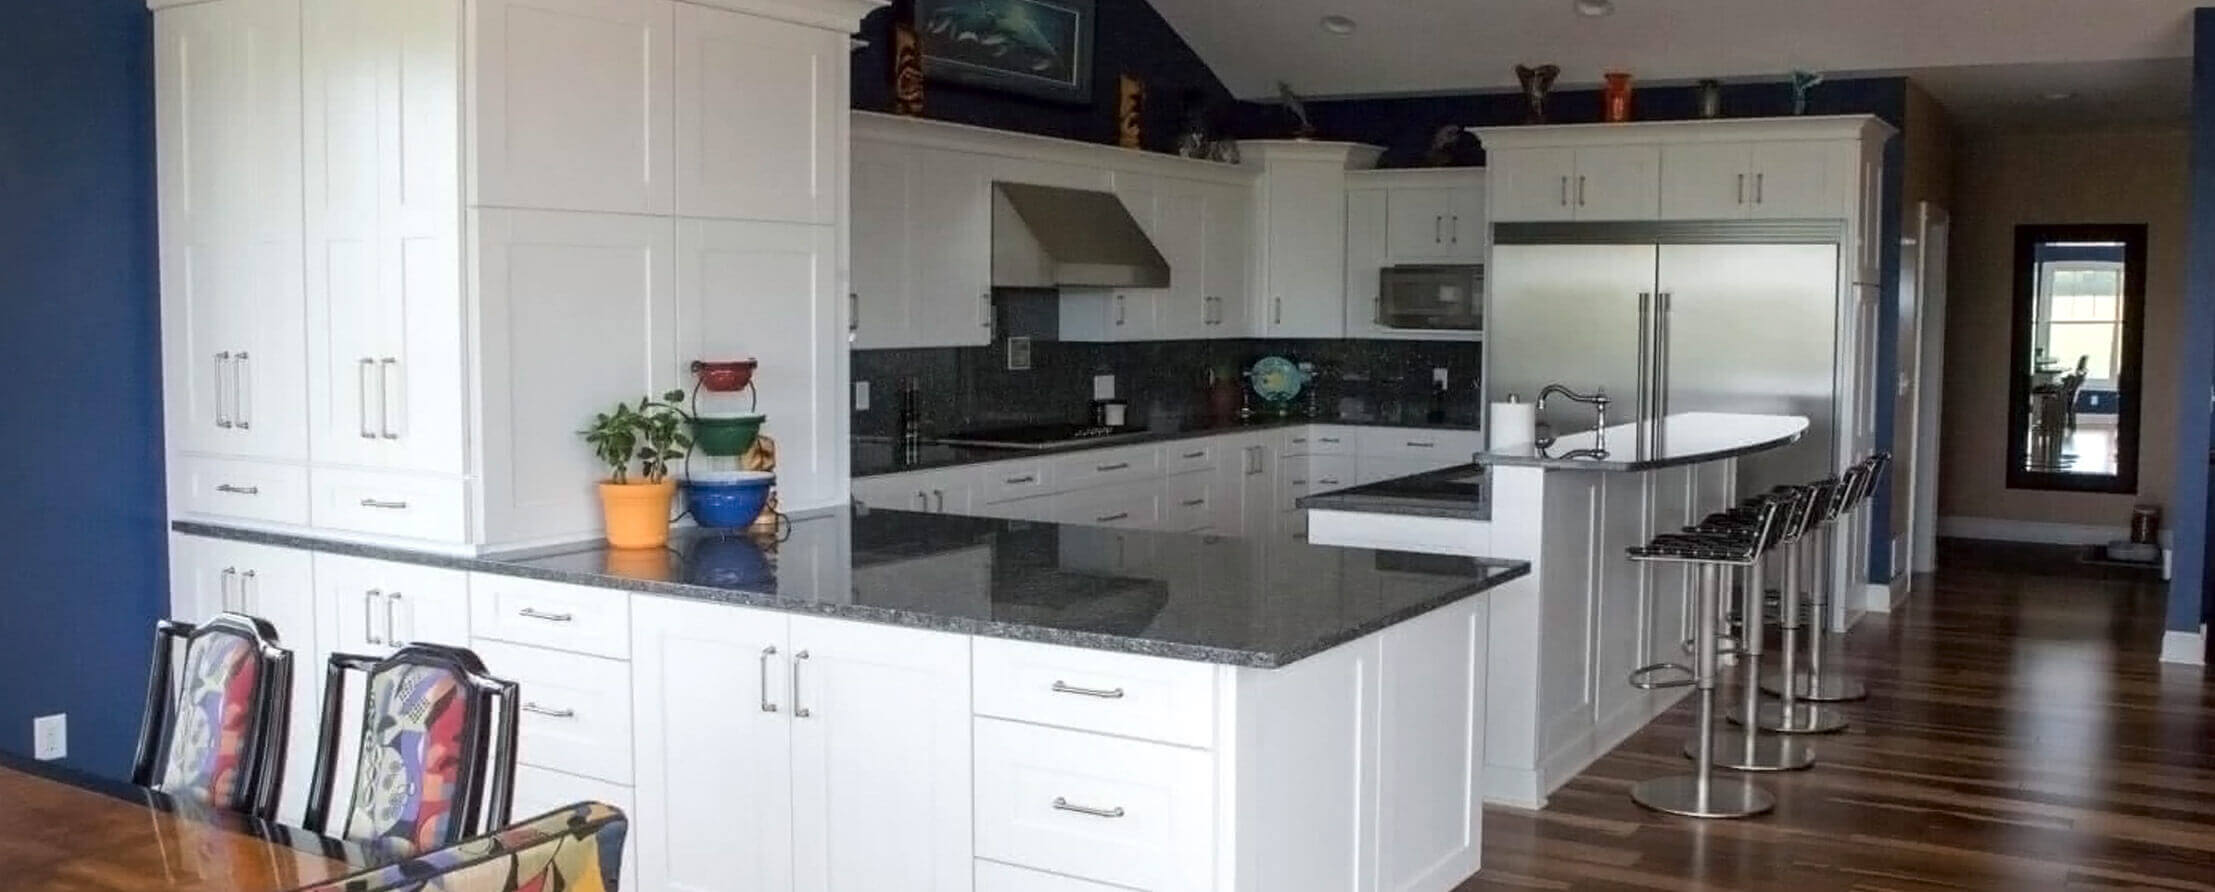 Kitchen with white cabinets, stainless steel appliances, wood floors, and navy blue walls